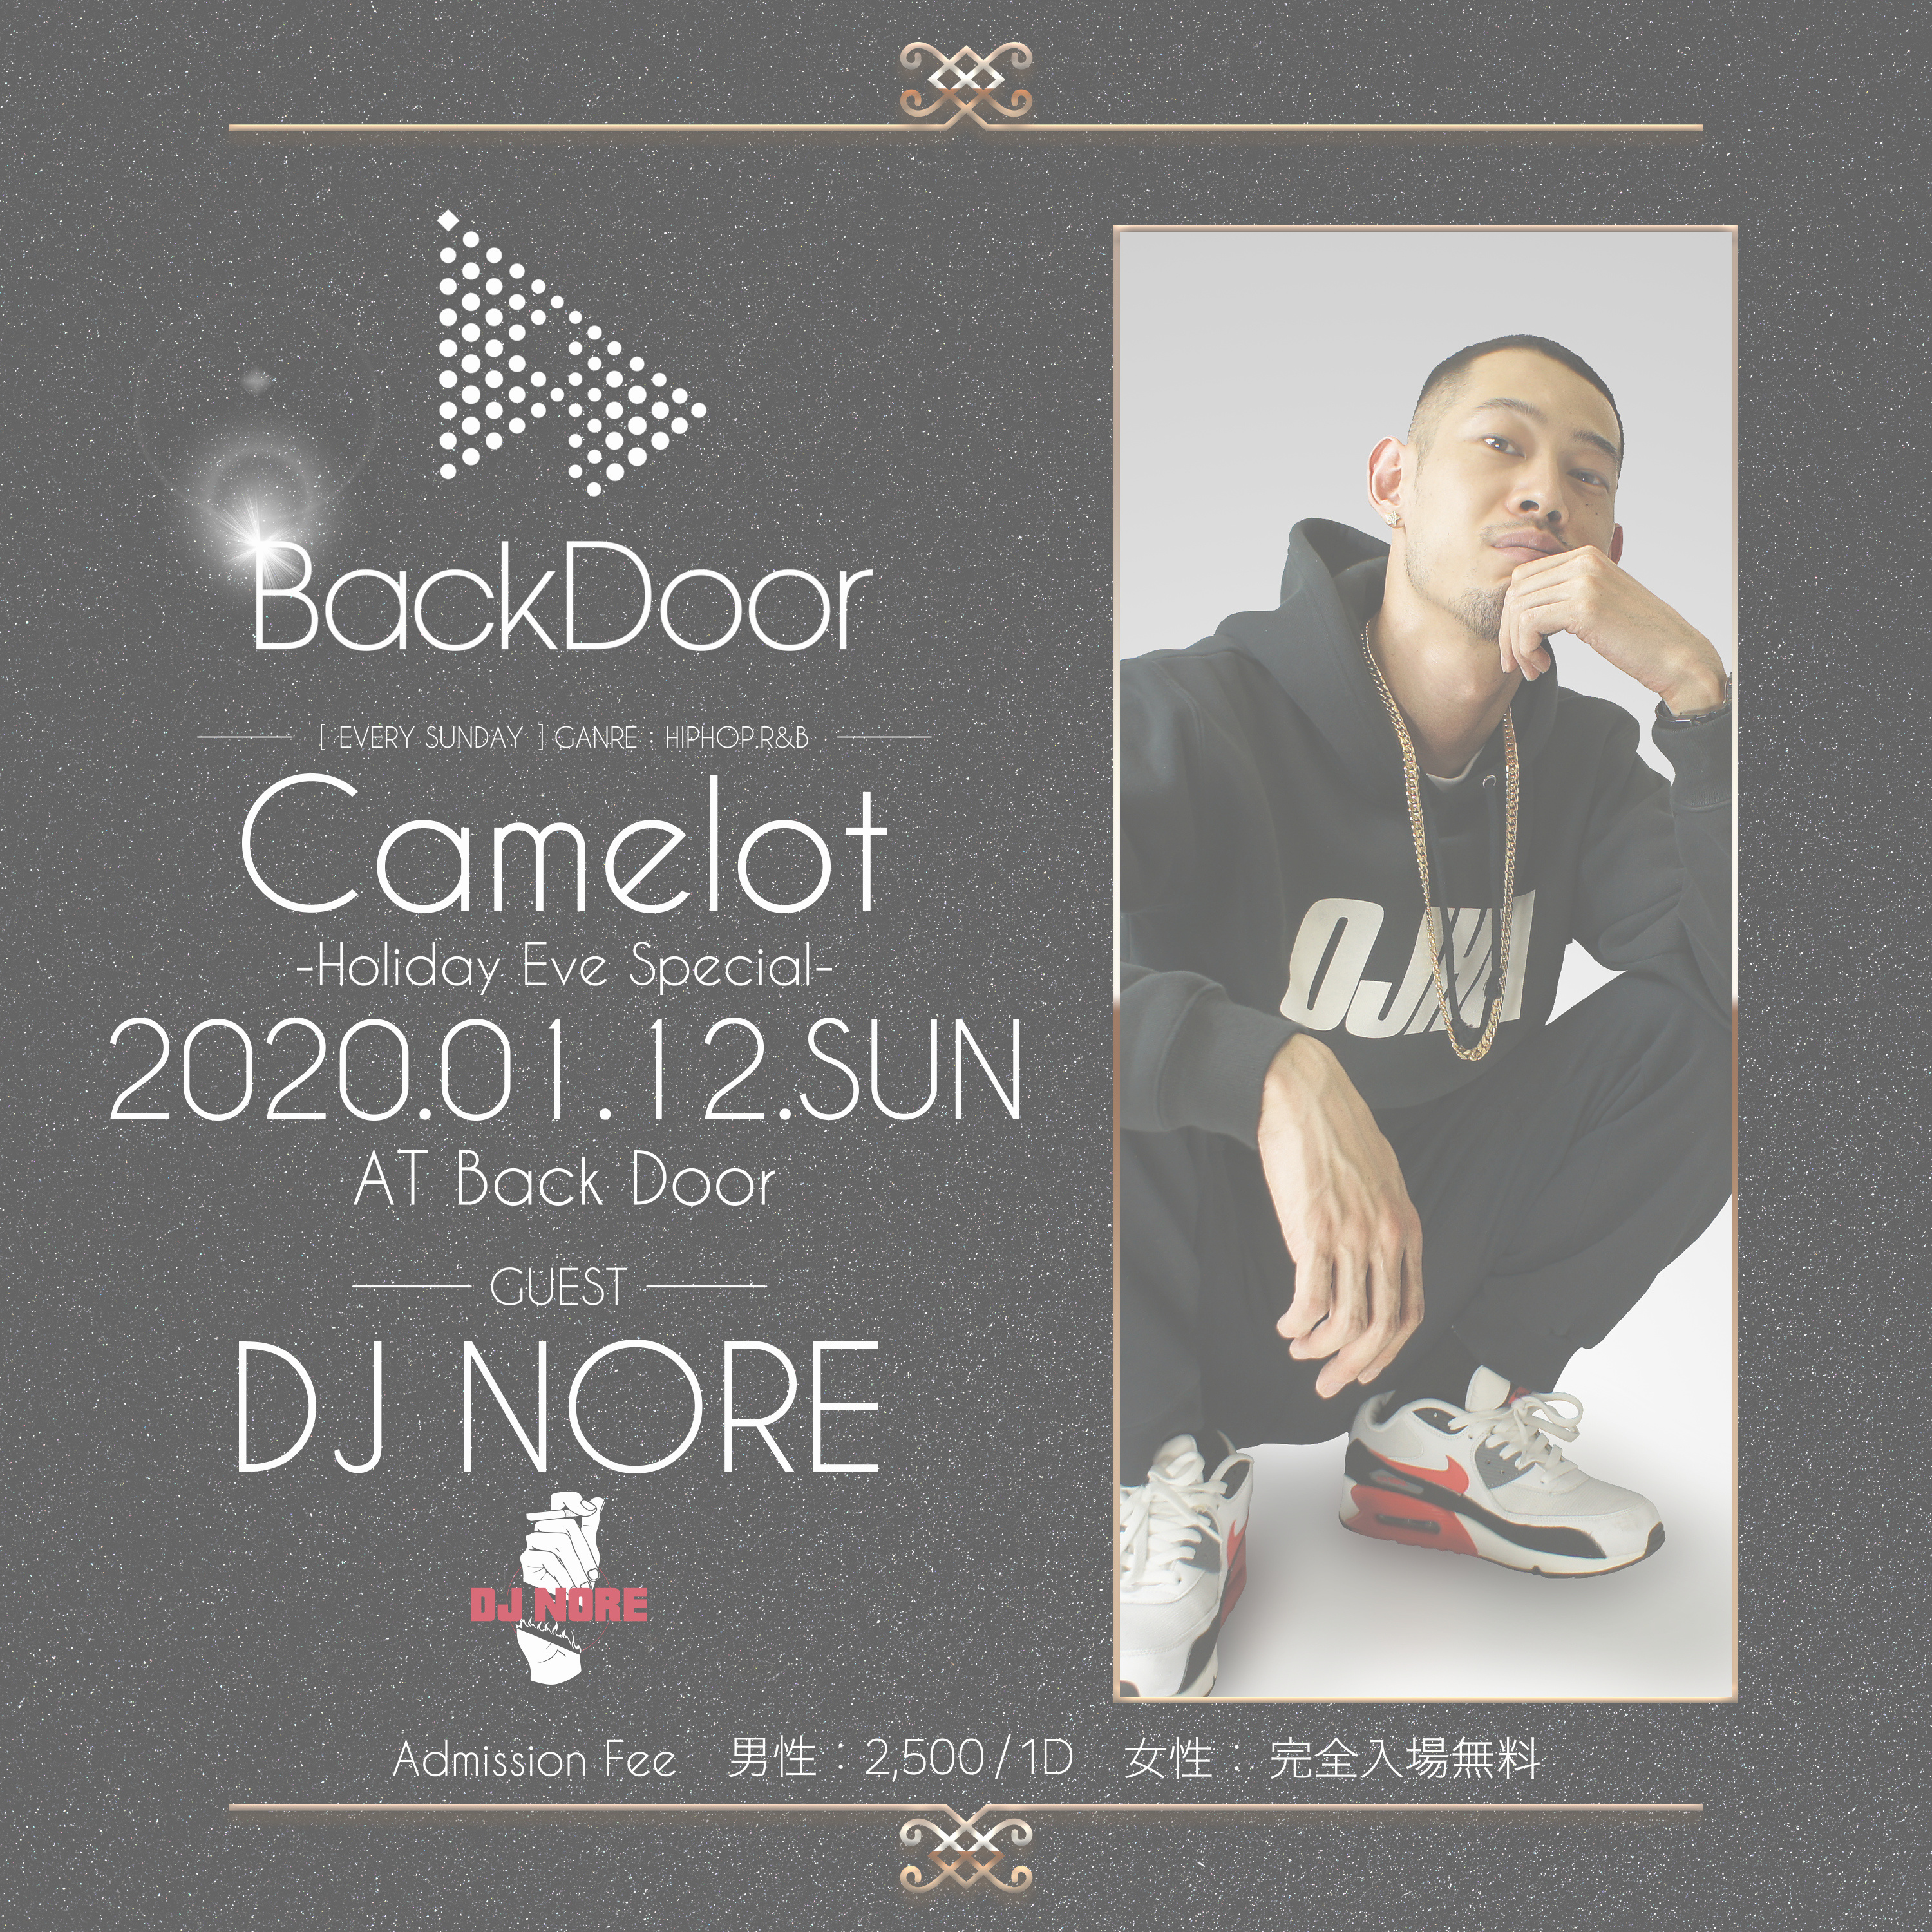 back door camelot @backdoor